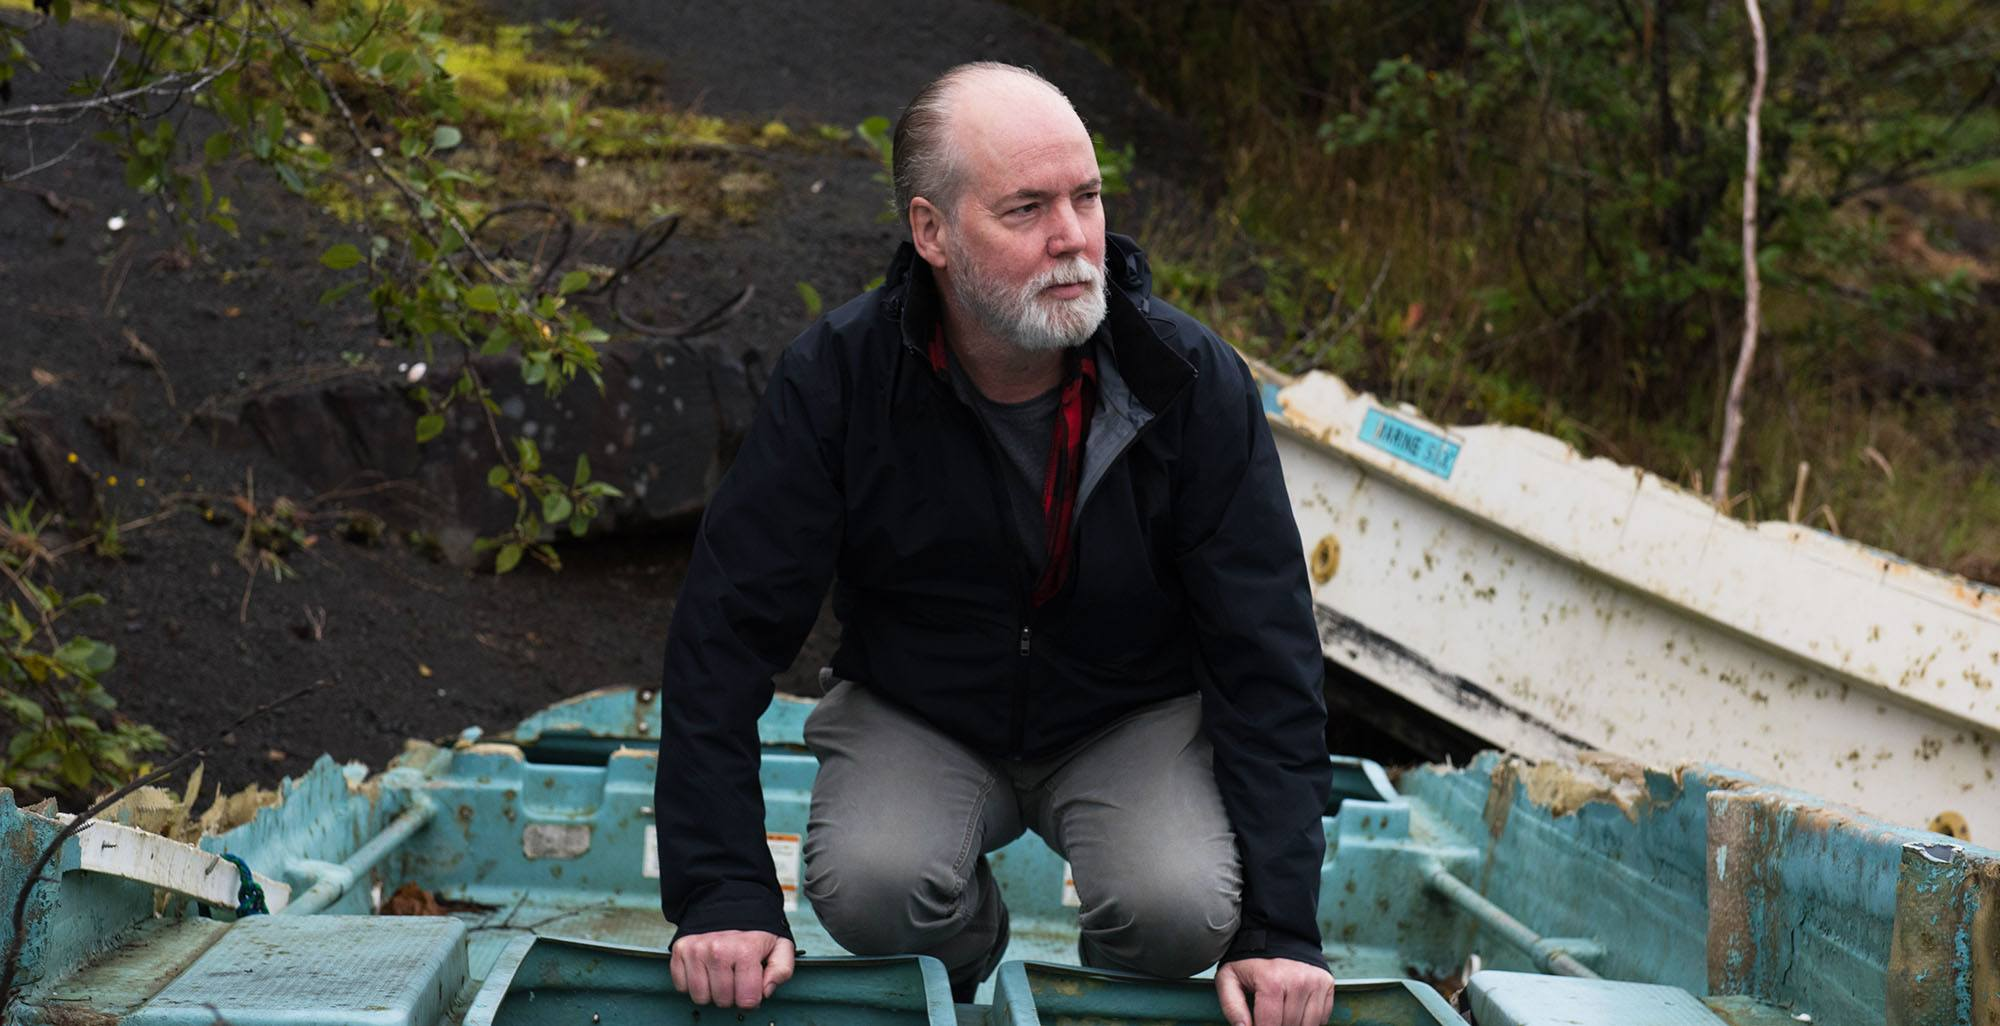 Douglas Coupland launching major art exhibition in Vancouver from ocean plastic